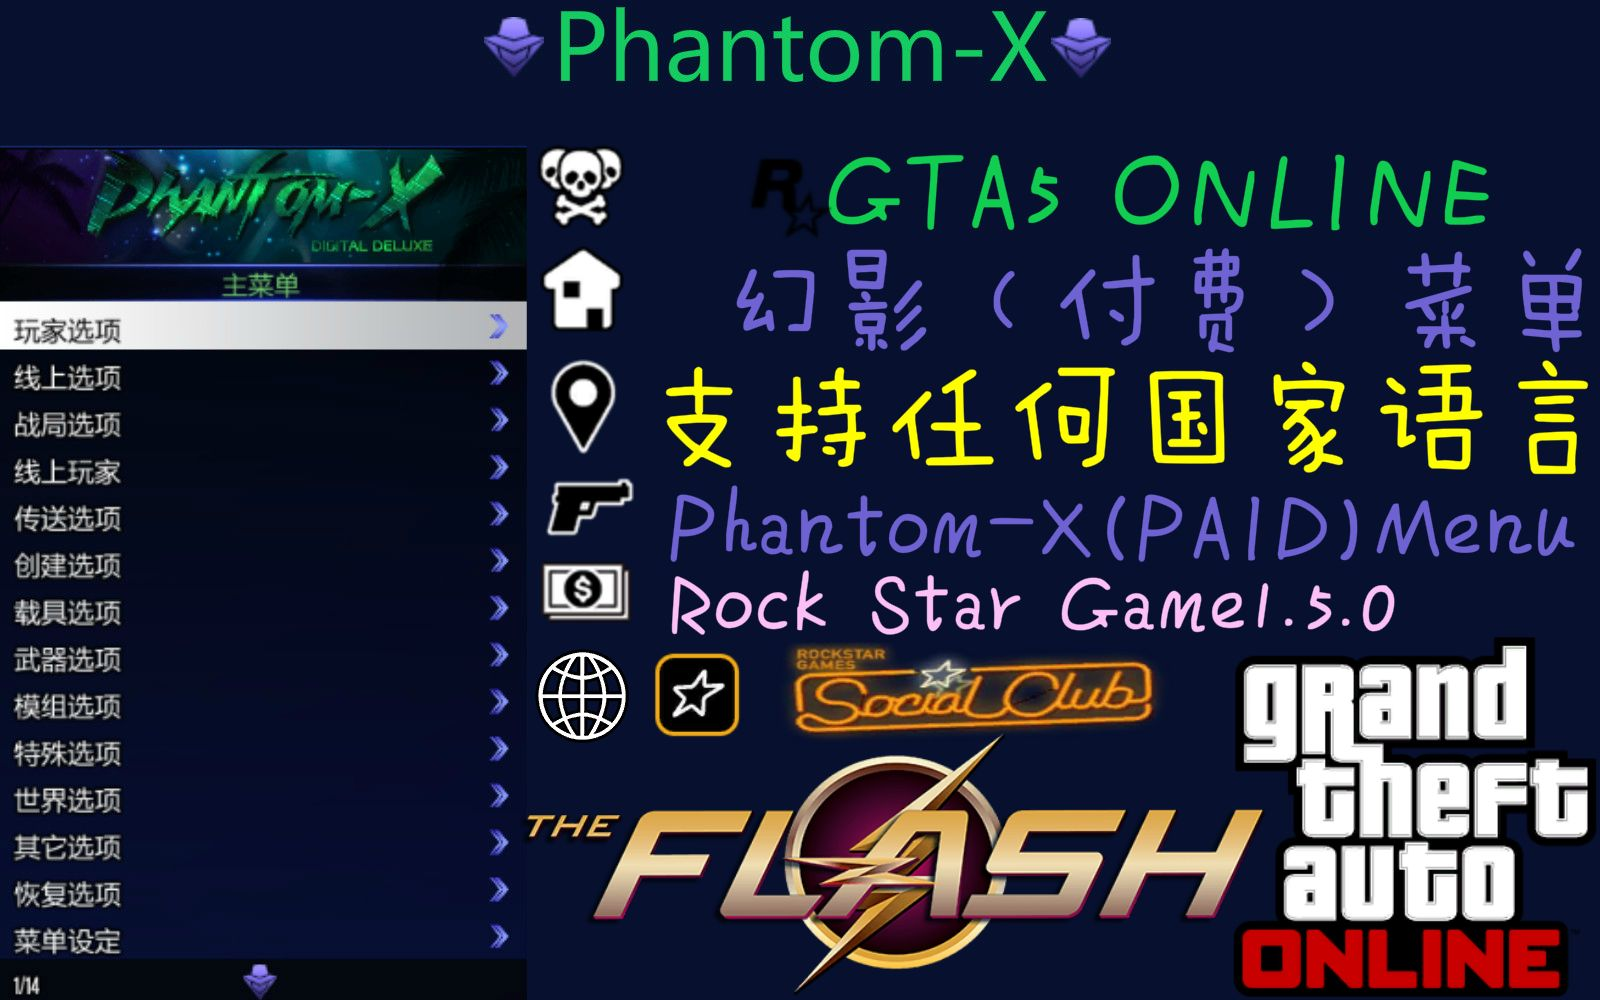 GTA5 Phantom-X Menu